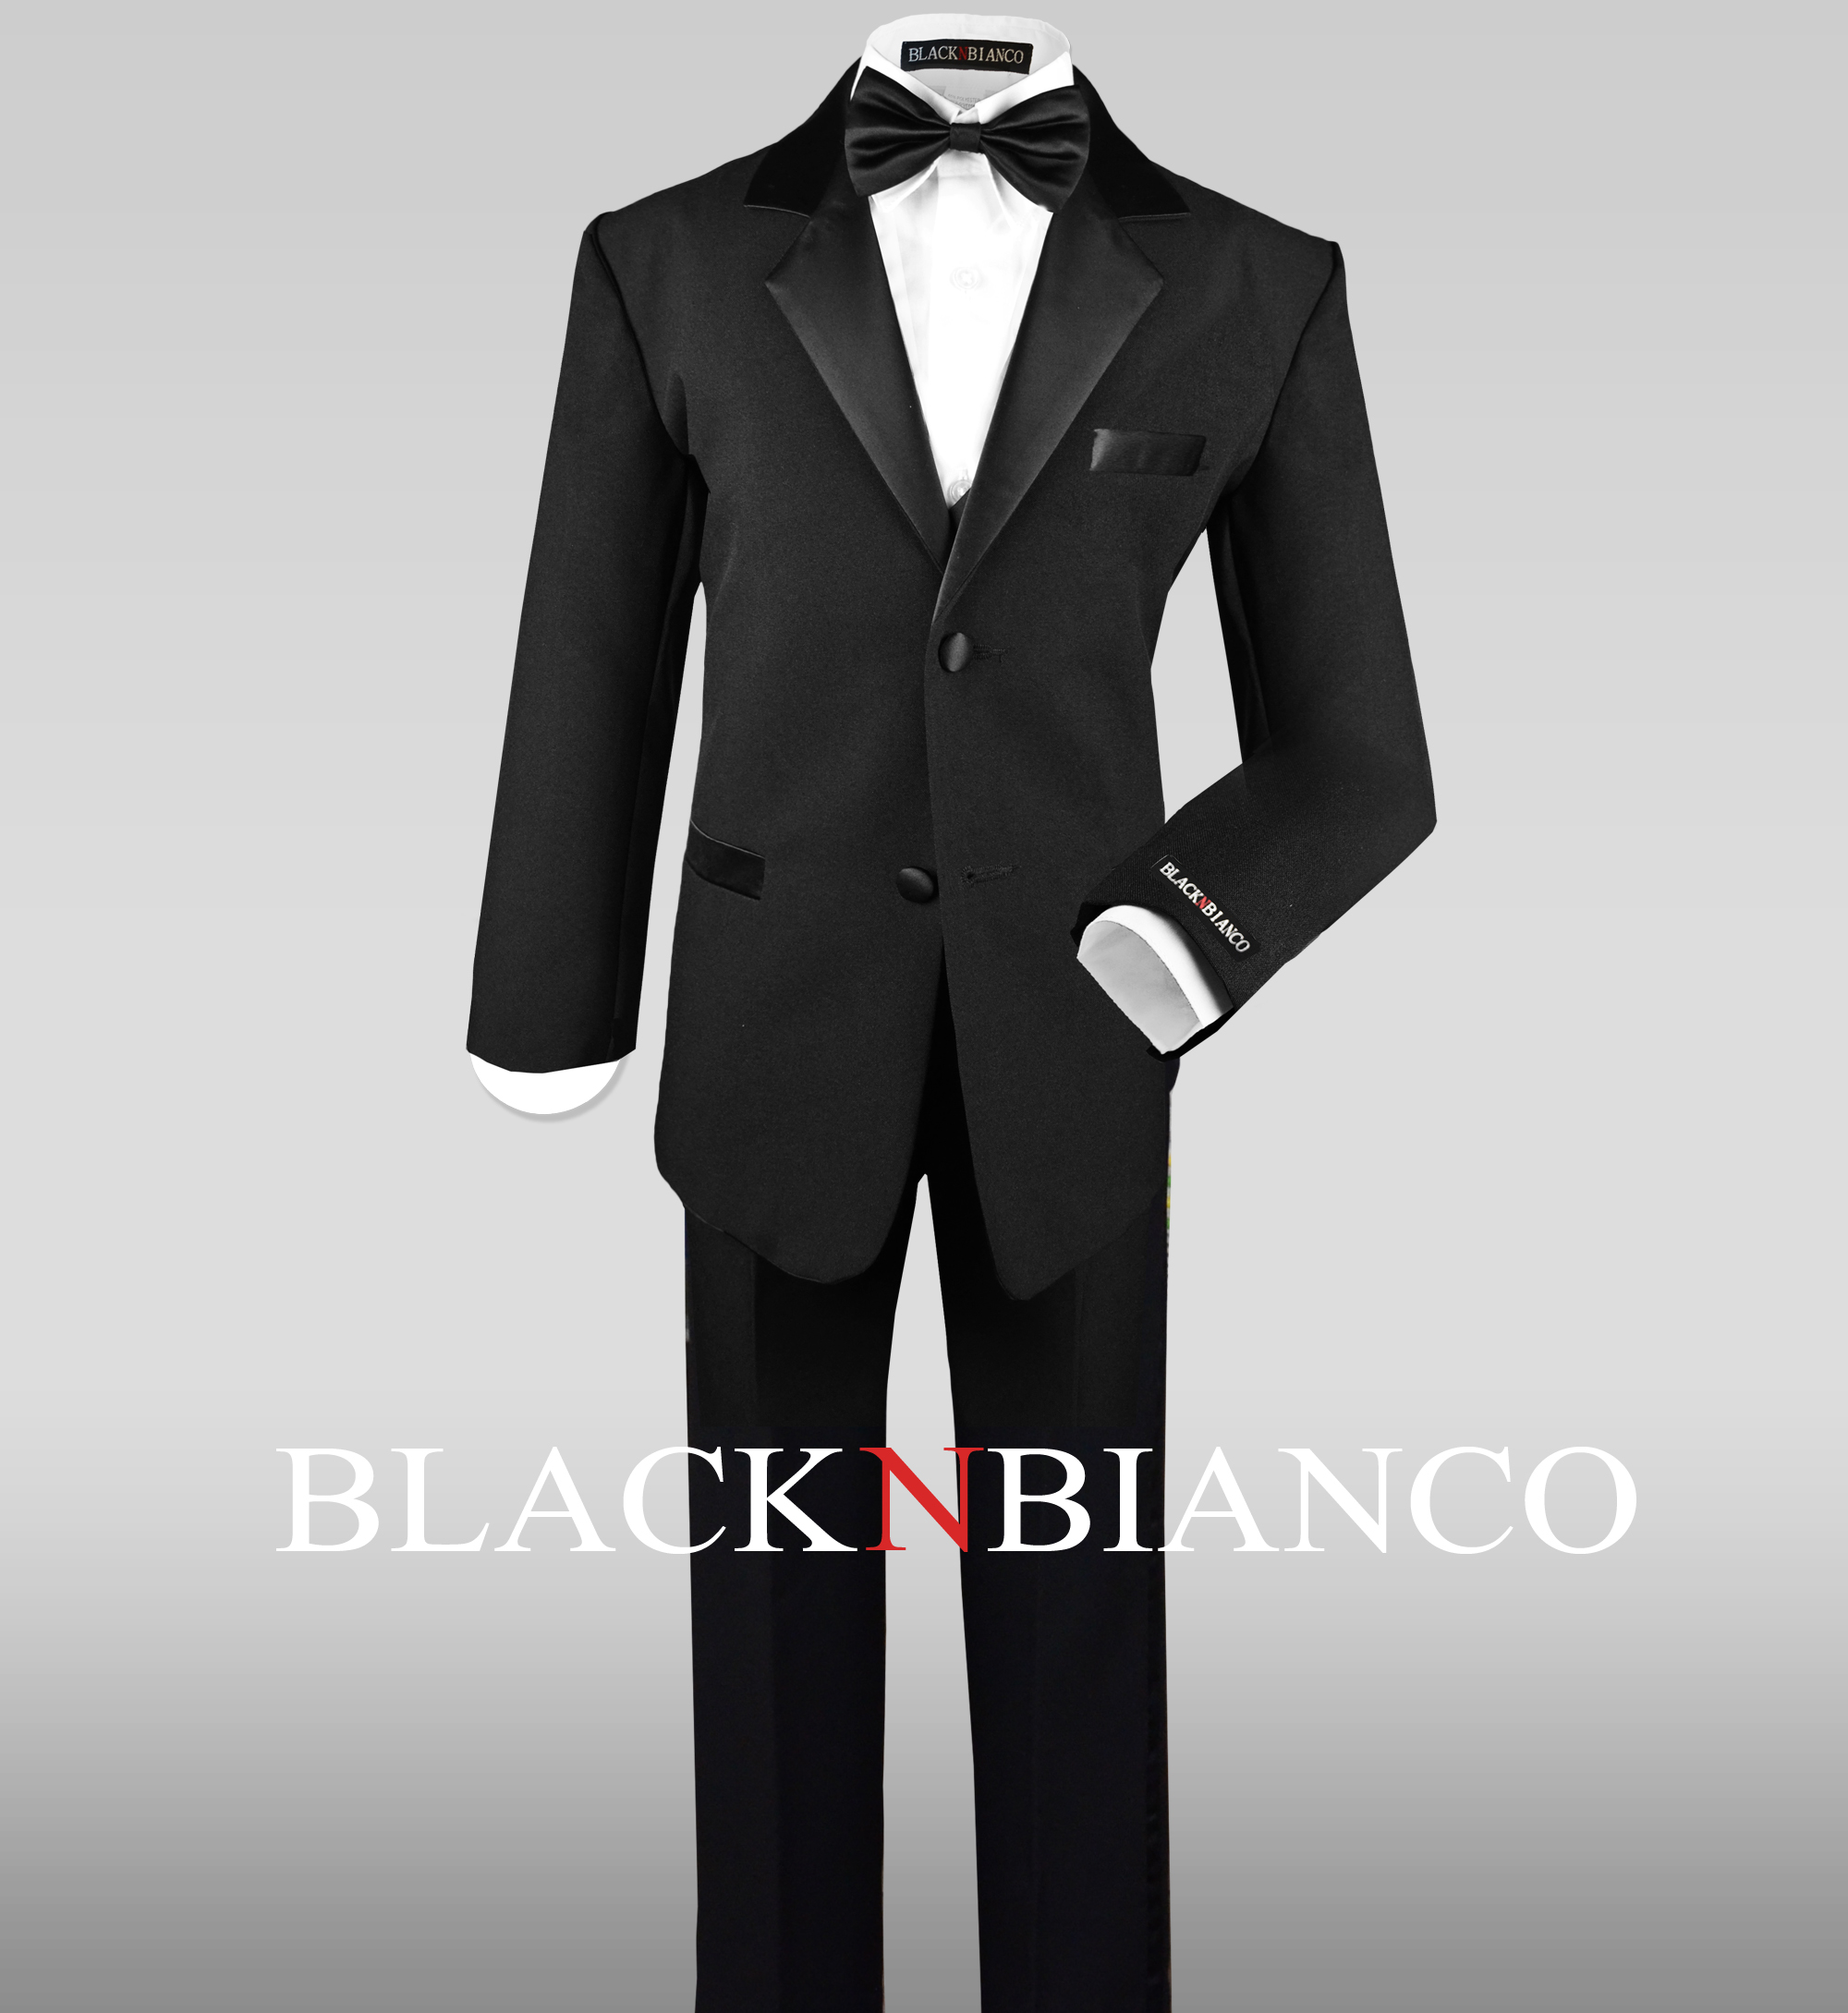 BLACK N BIANCO Blog | Blogging about about the latest kids formal ...